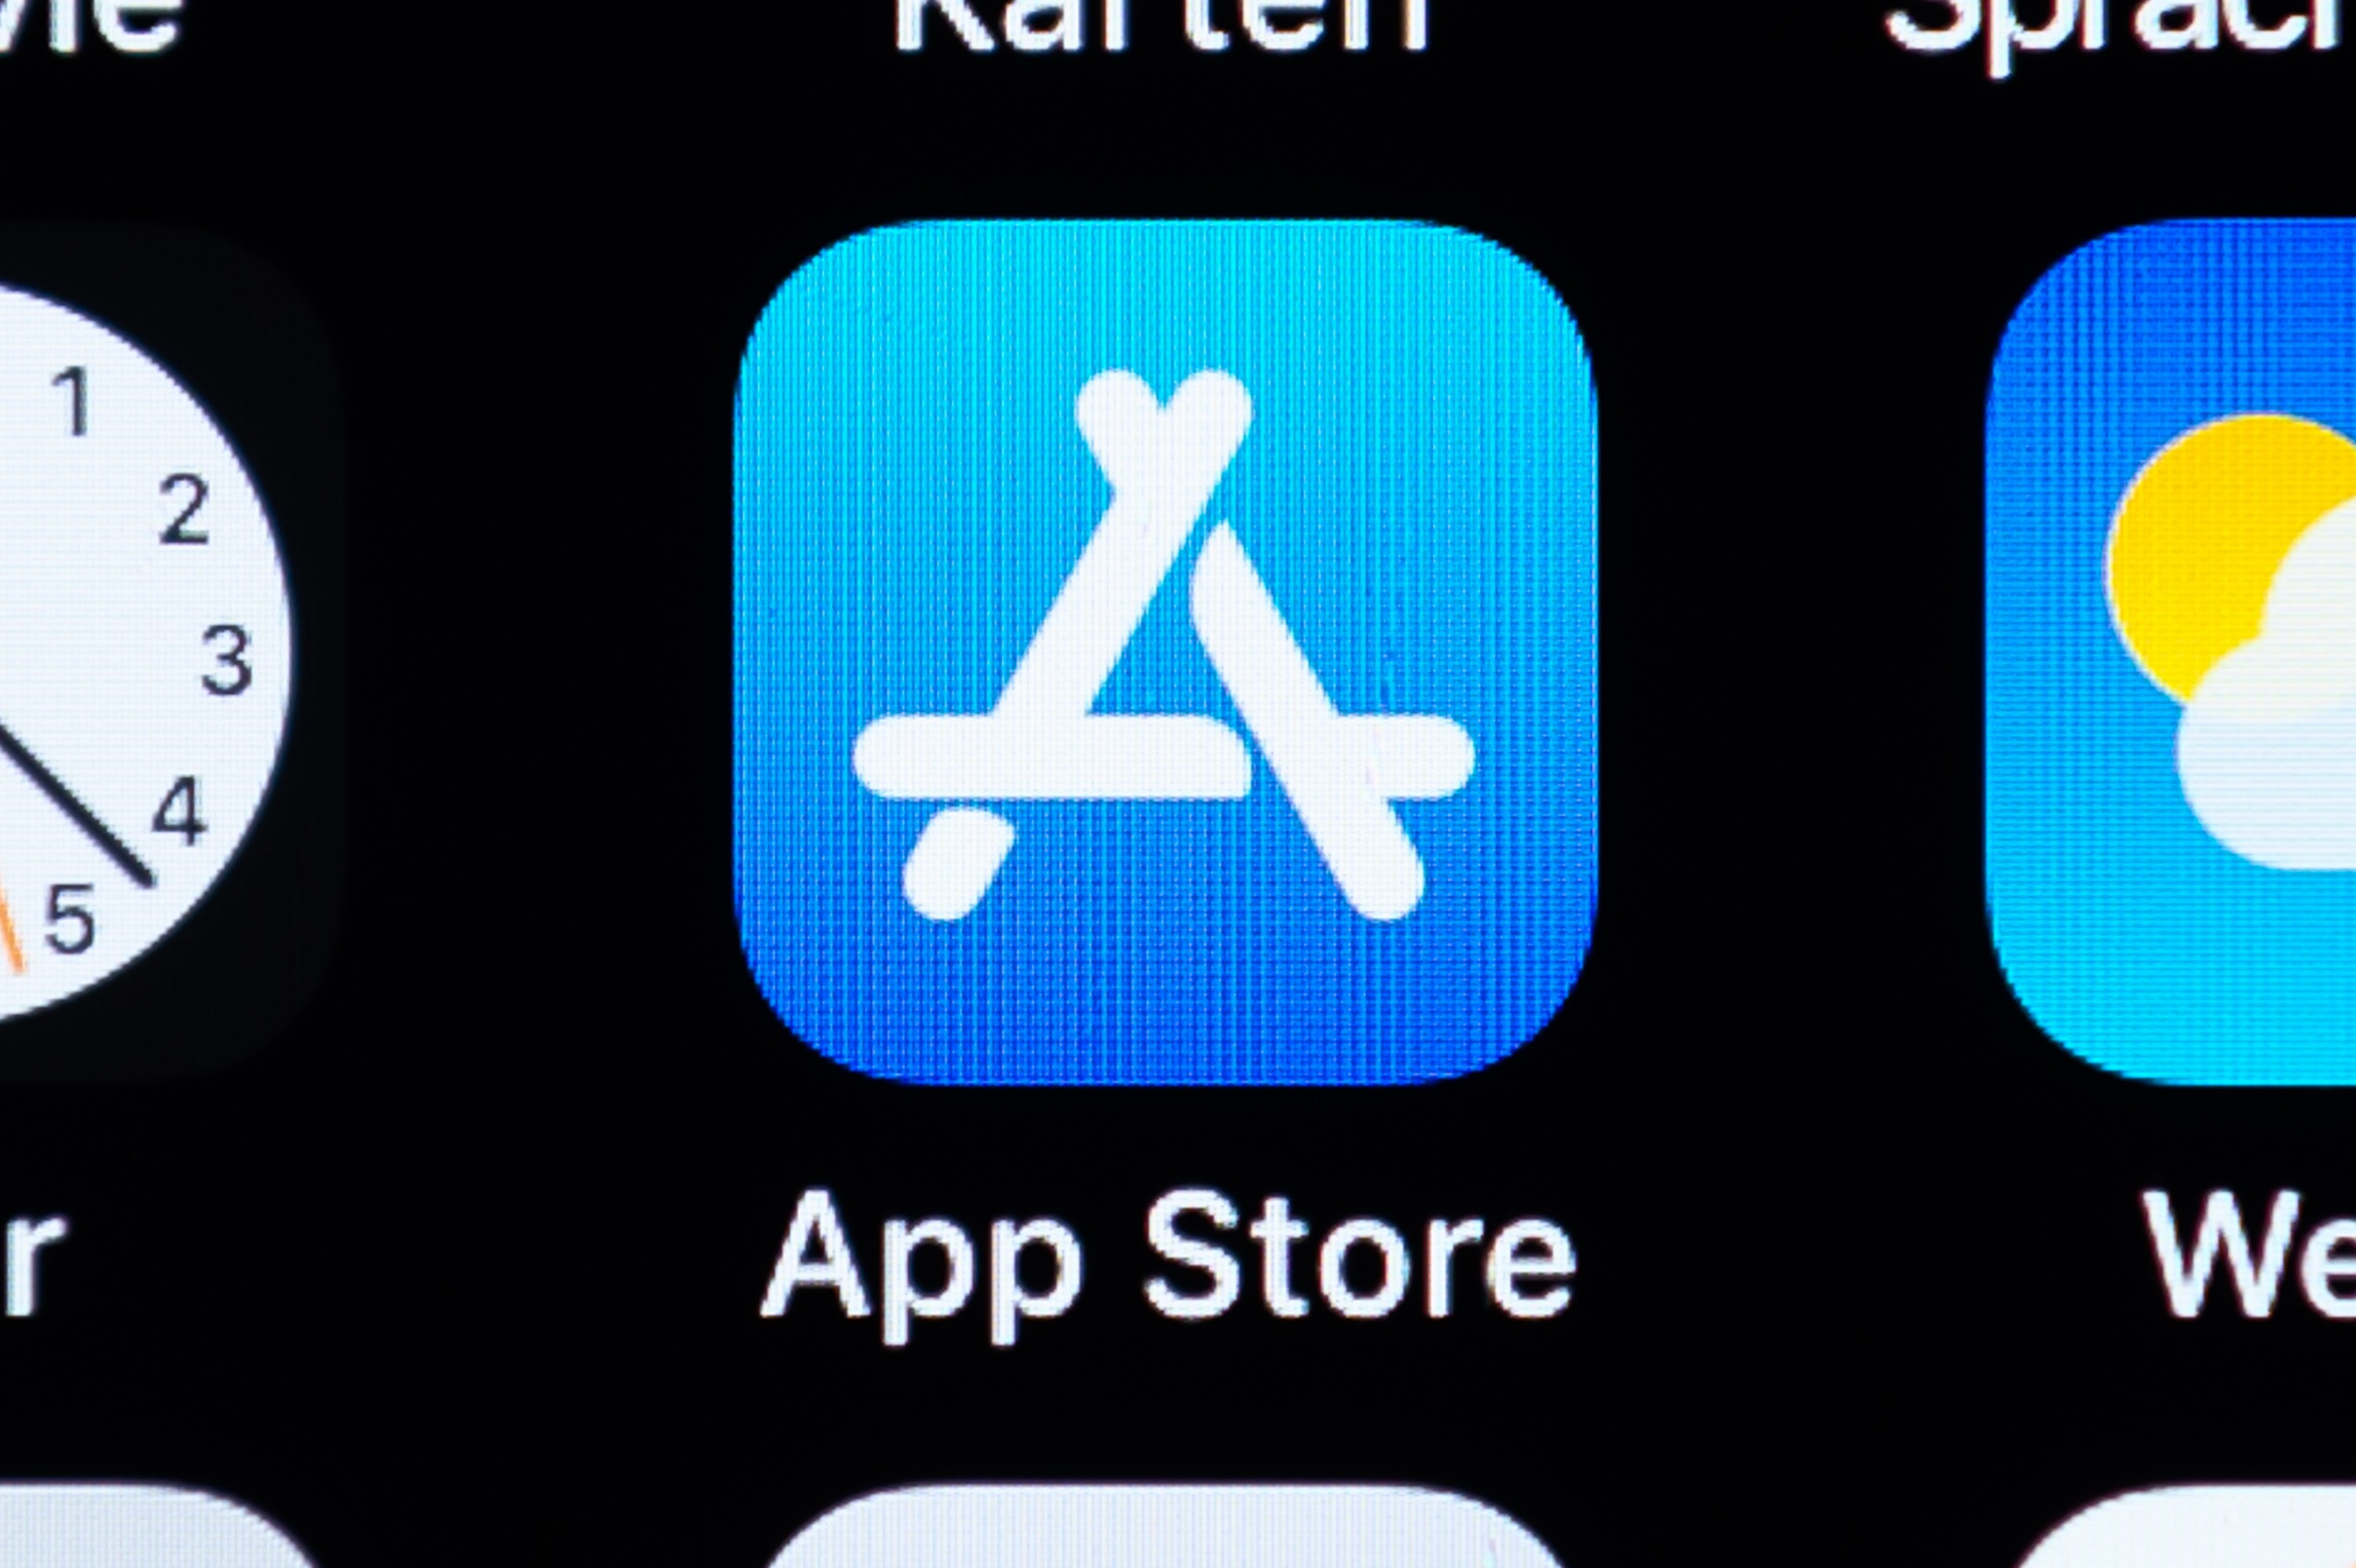 How The App Store Ended A Golden Era Of Software By Megan Morrone Onezero